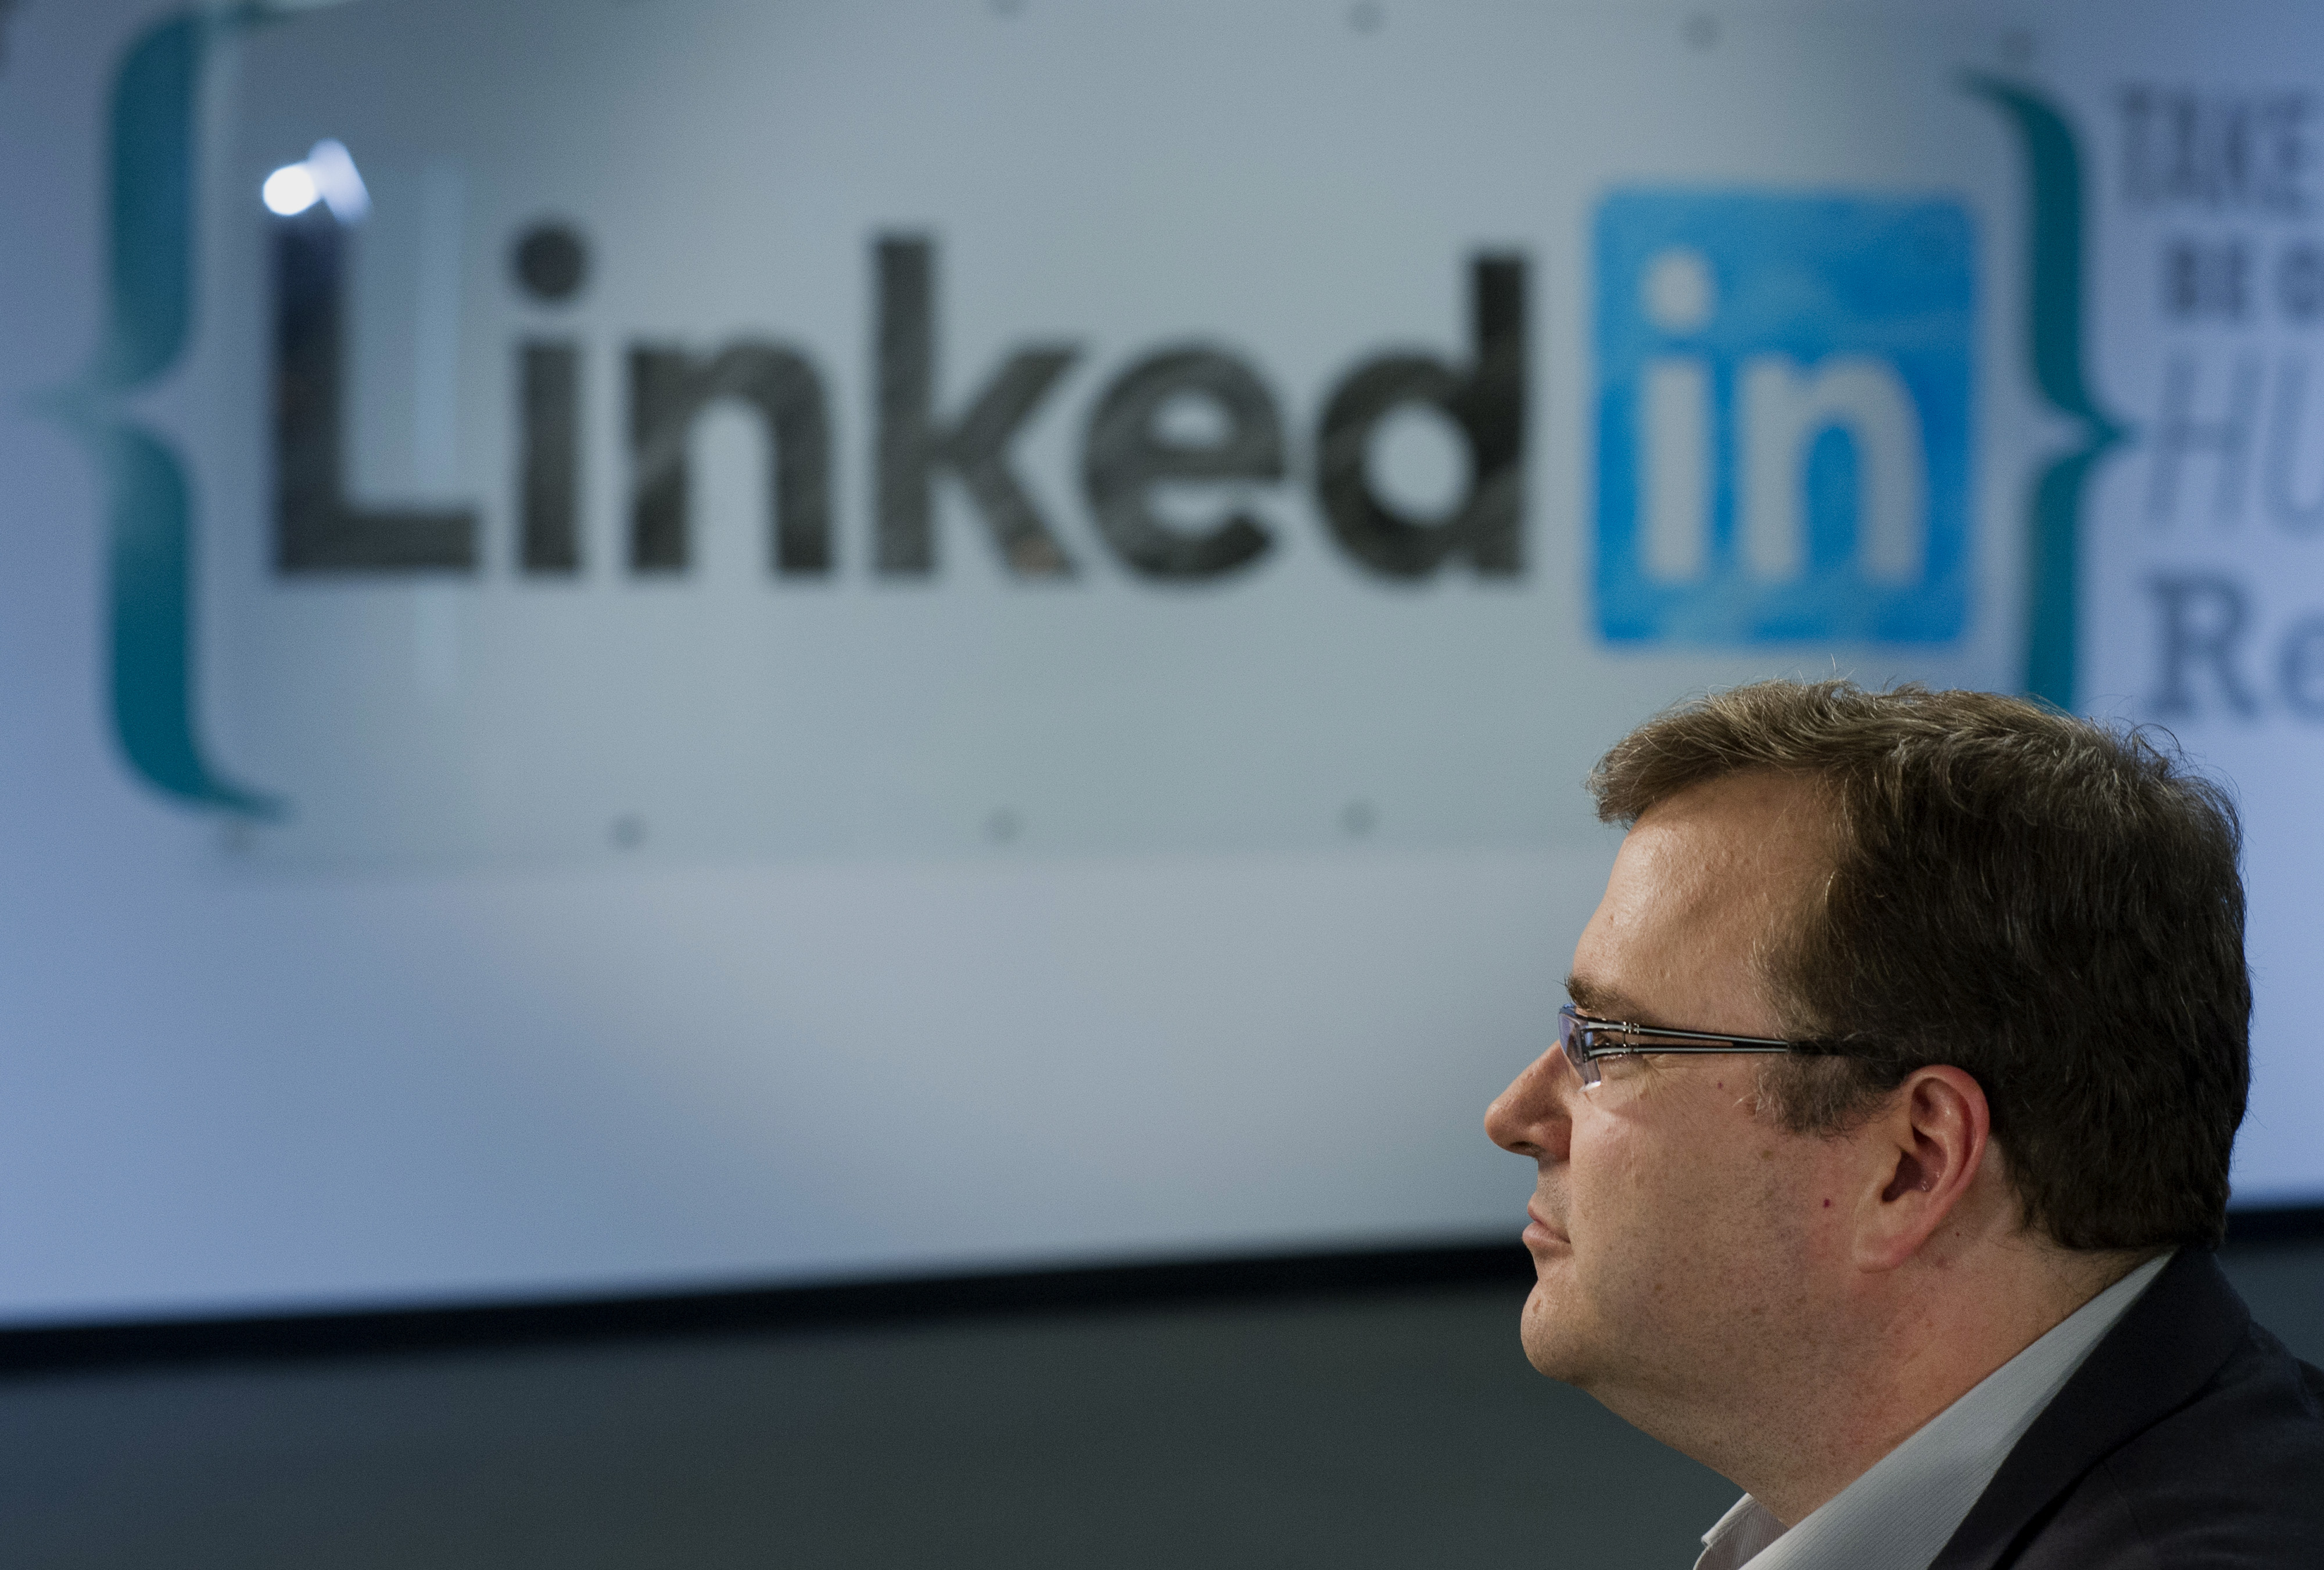 Reid Hoffman, chairman and co-founder of LinkedIn Corp., pauses during a Bloomberg Television interview in Sunnyvale, California, U.S., on Thursday, June 12, 2014. LinkedIn announced last week that users will soon have more design license over their profile pages, with the option of adding stock images or a custom backdrop - similar to what's already available on Facebook and Twitter. Photographer: David Paul Morris/Bloomberg via Getty Images